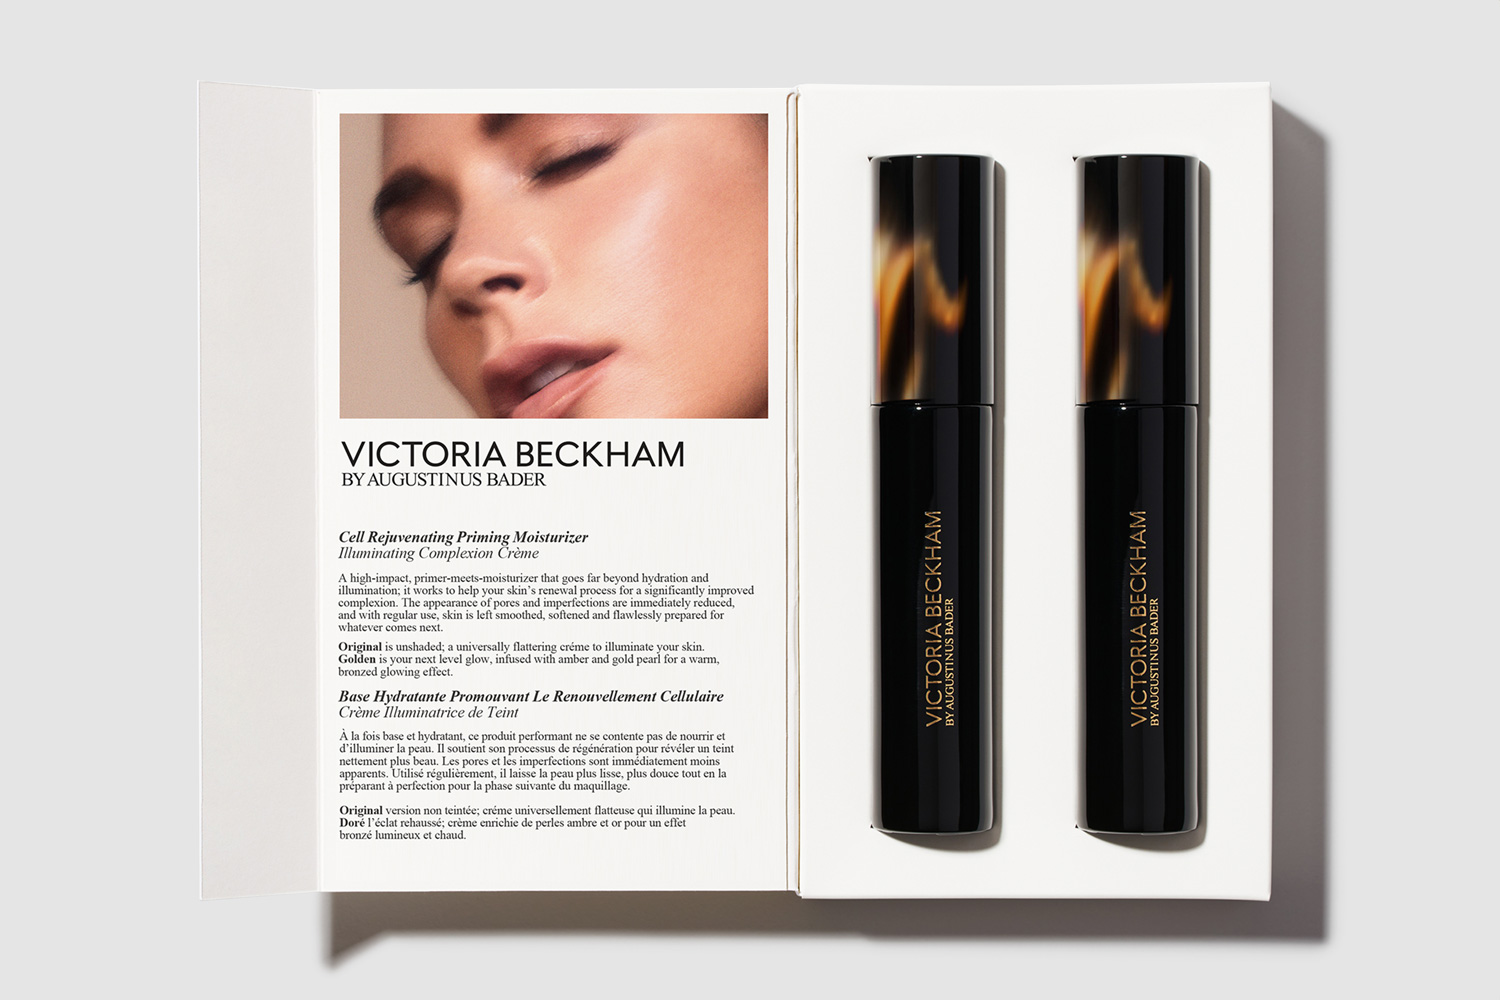 Packaging Beauty Cosmetics Makeup Retail Luxury Recyclable Environmentally Friendly Brand Creative Manufacture Production Victoria Beckham Progress 12